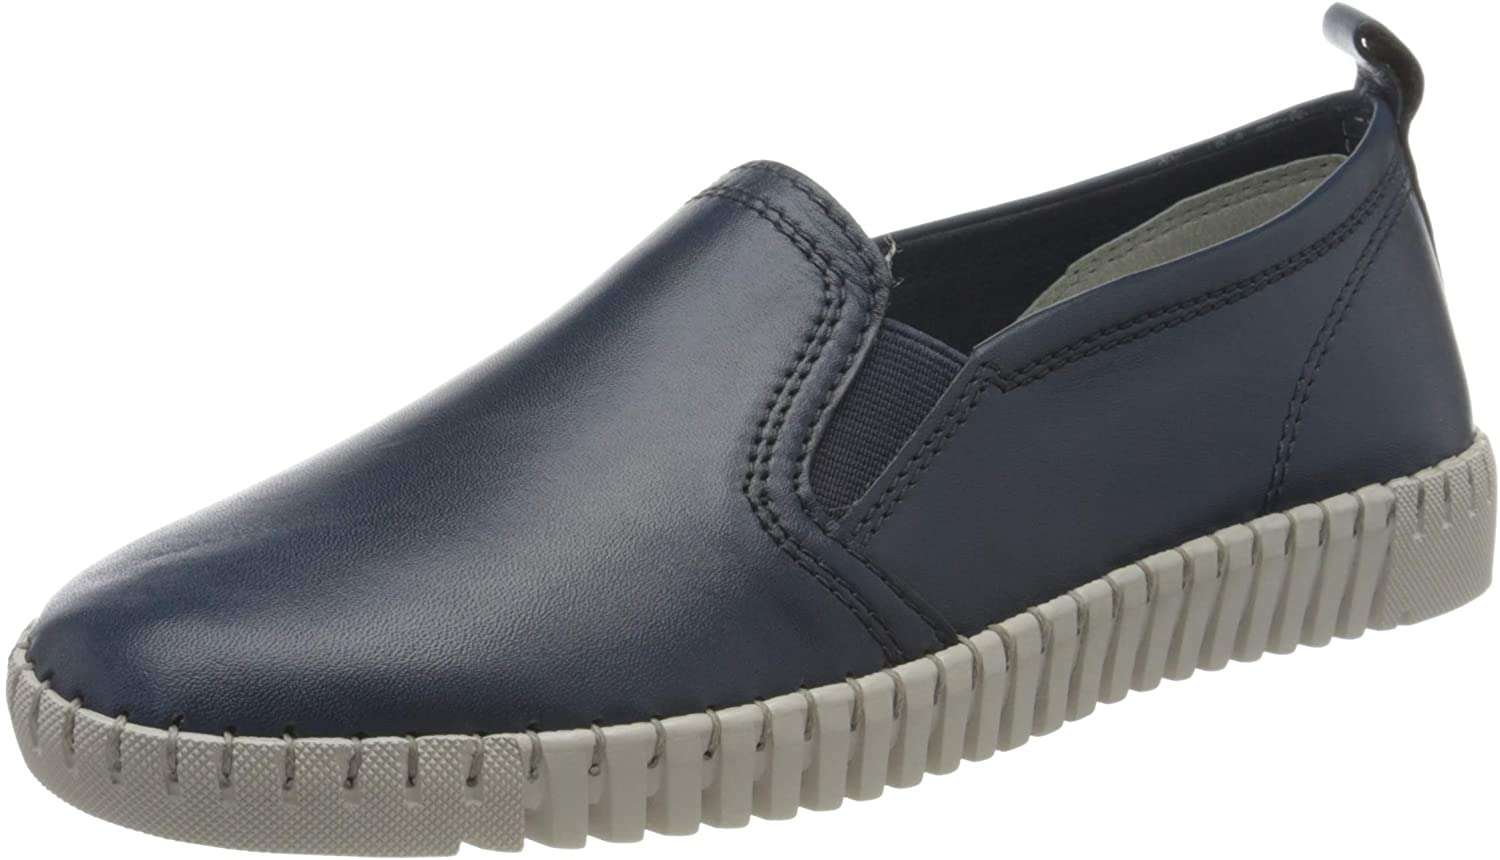 Marco Tozzi Women's Loafers